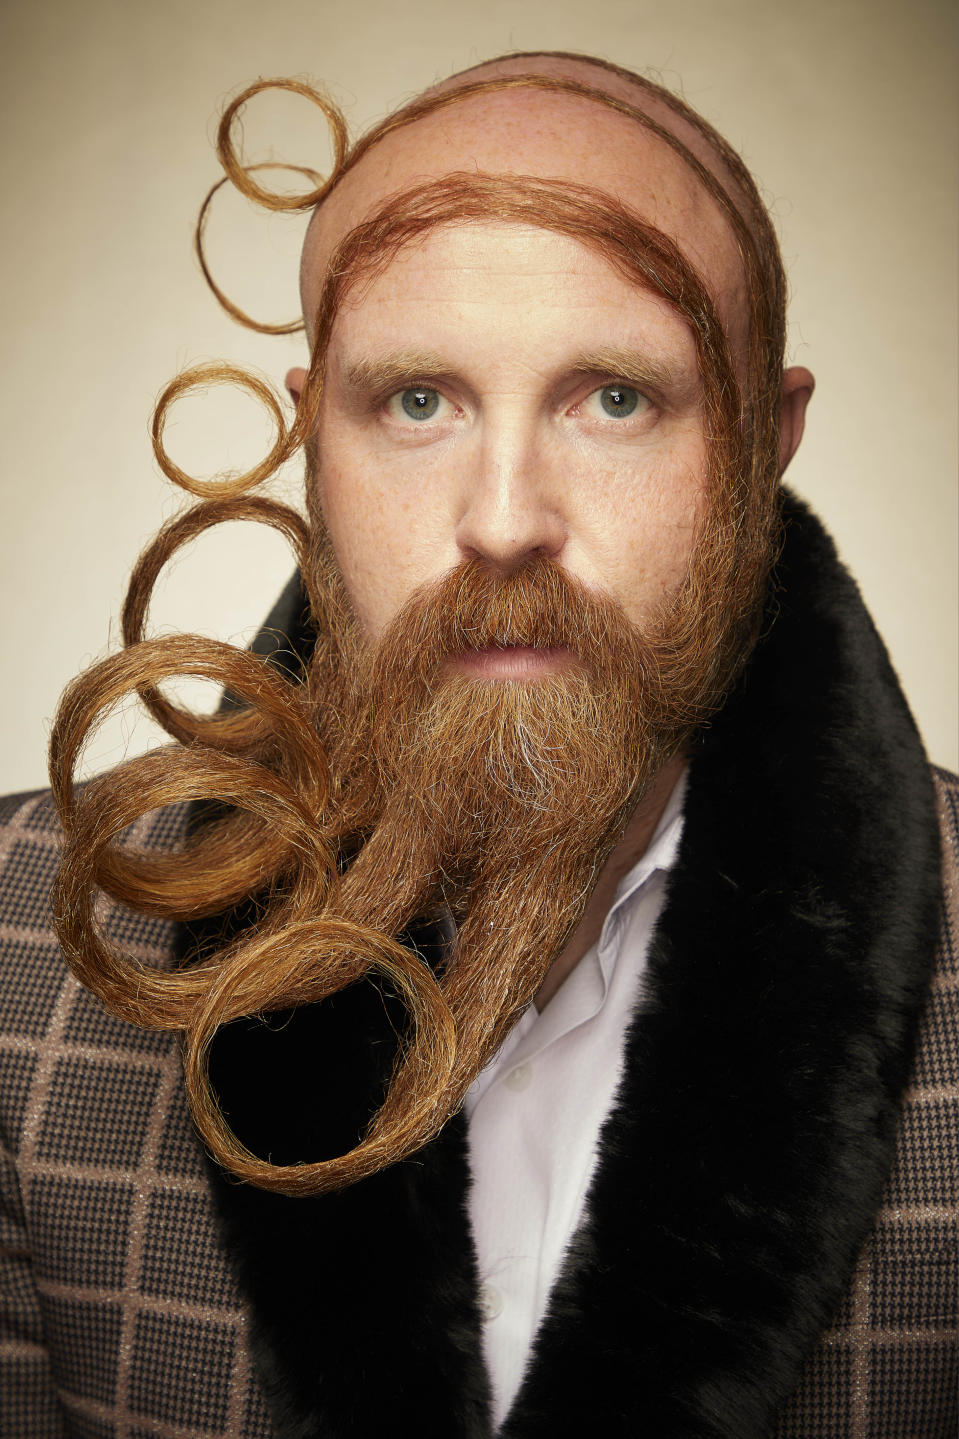 We're going dizzy with this beard styled in concentric circles. [Photo: Caters]